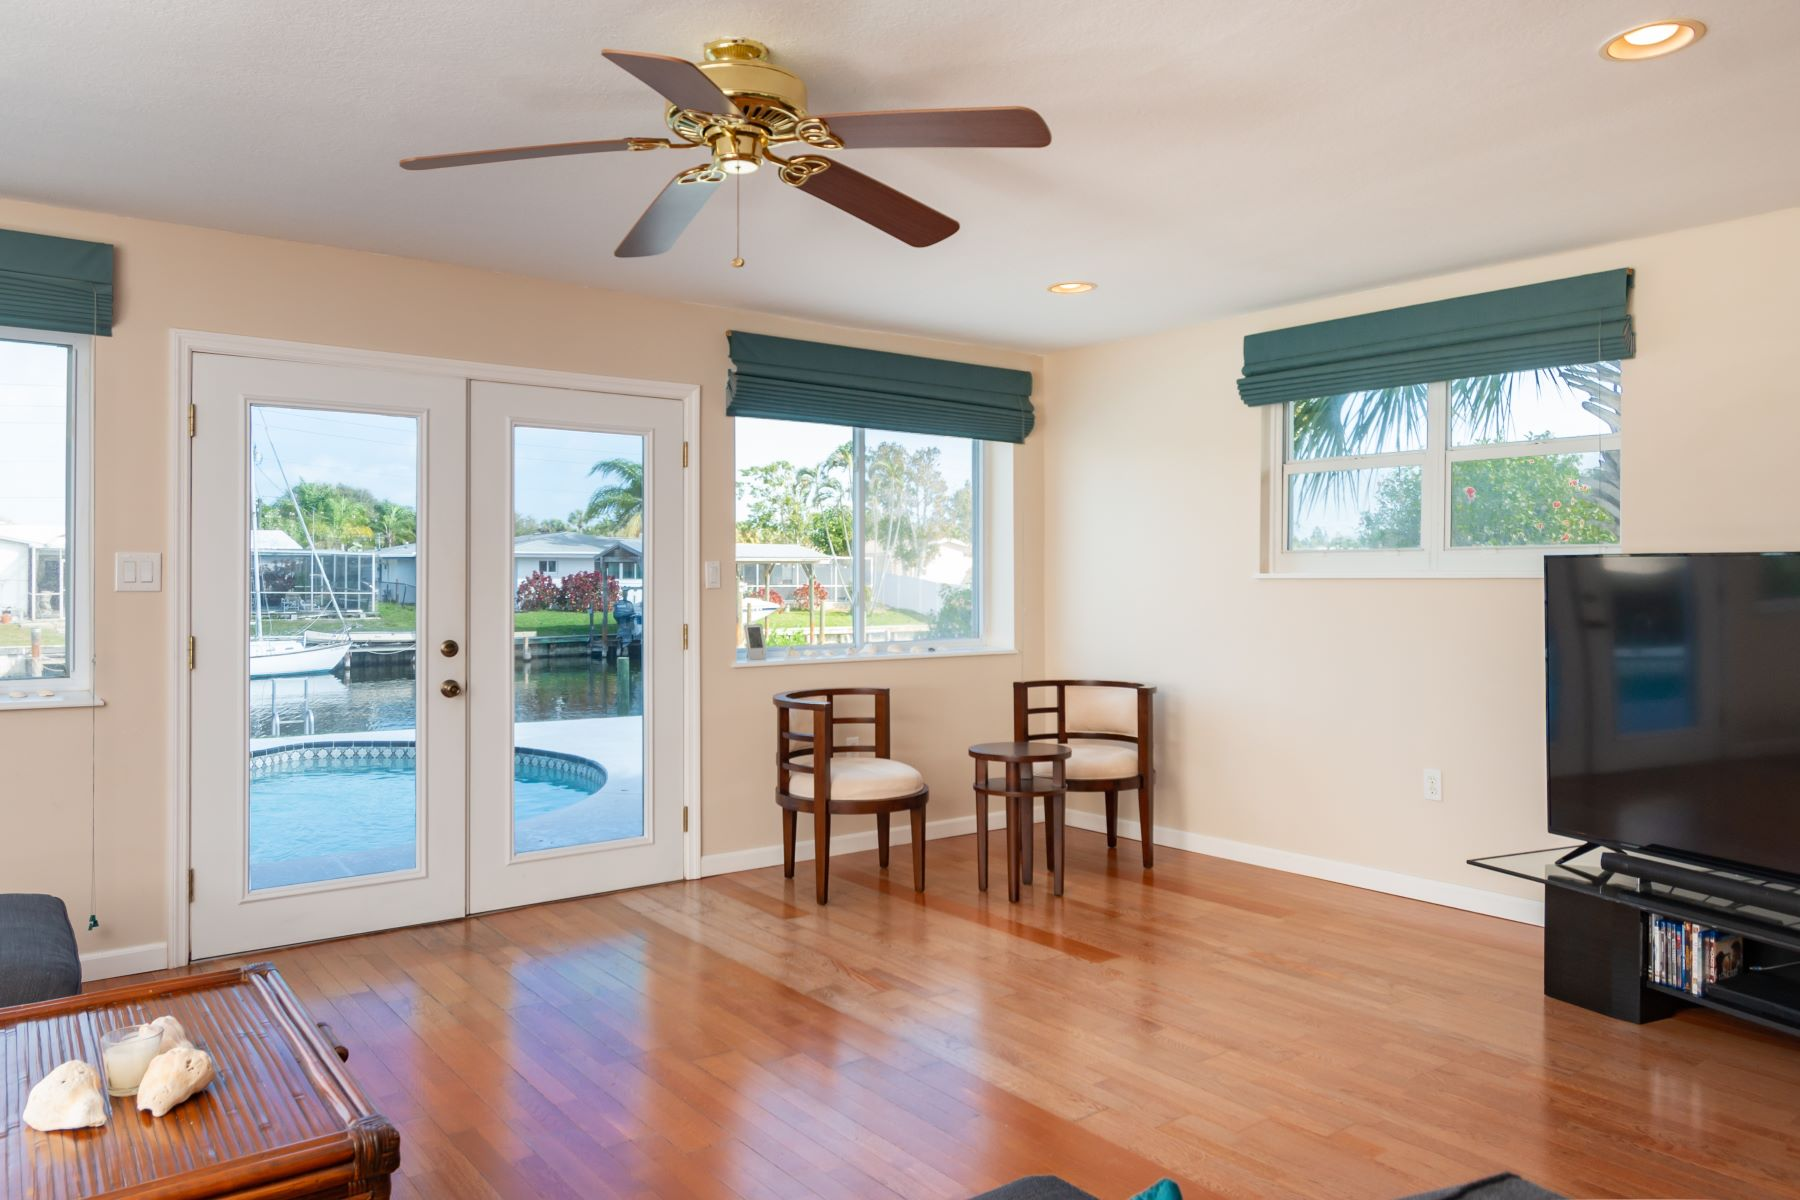 Additional photo for property listing at 439 Sandpiper Drive Satellite Beach, Florida 32937 United States